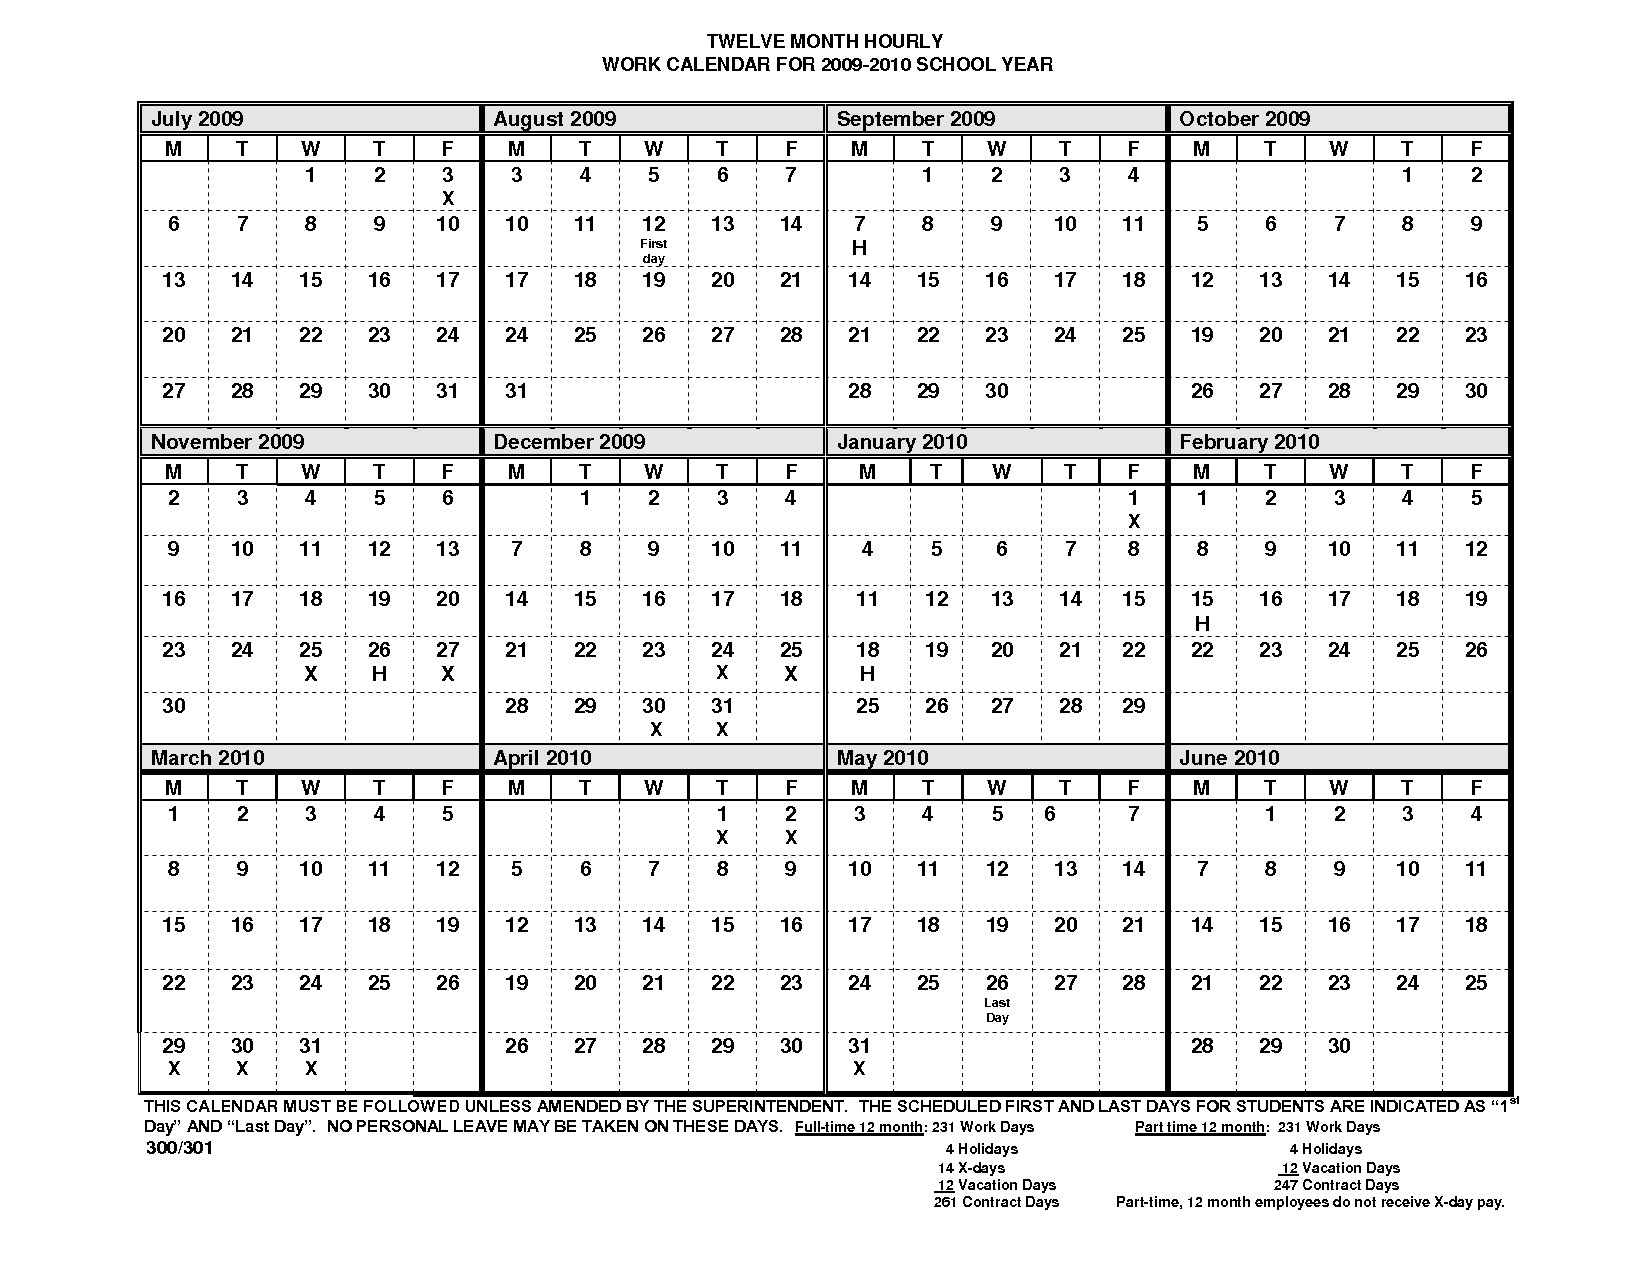 Template For Calendar With 12 Months On One Page | Template Calendar pertaining to Template For Calendar With 12 Months On One Page